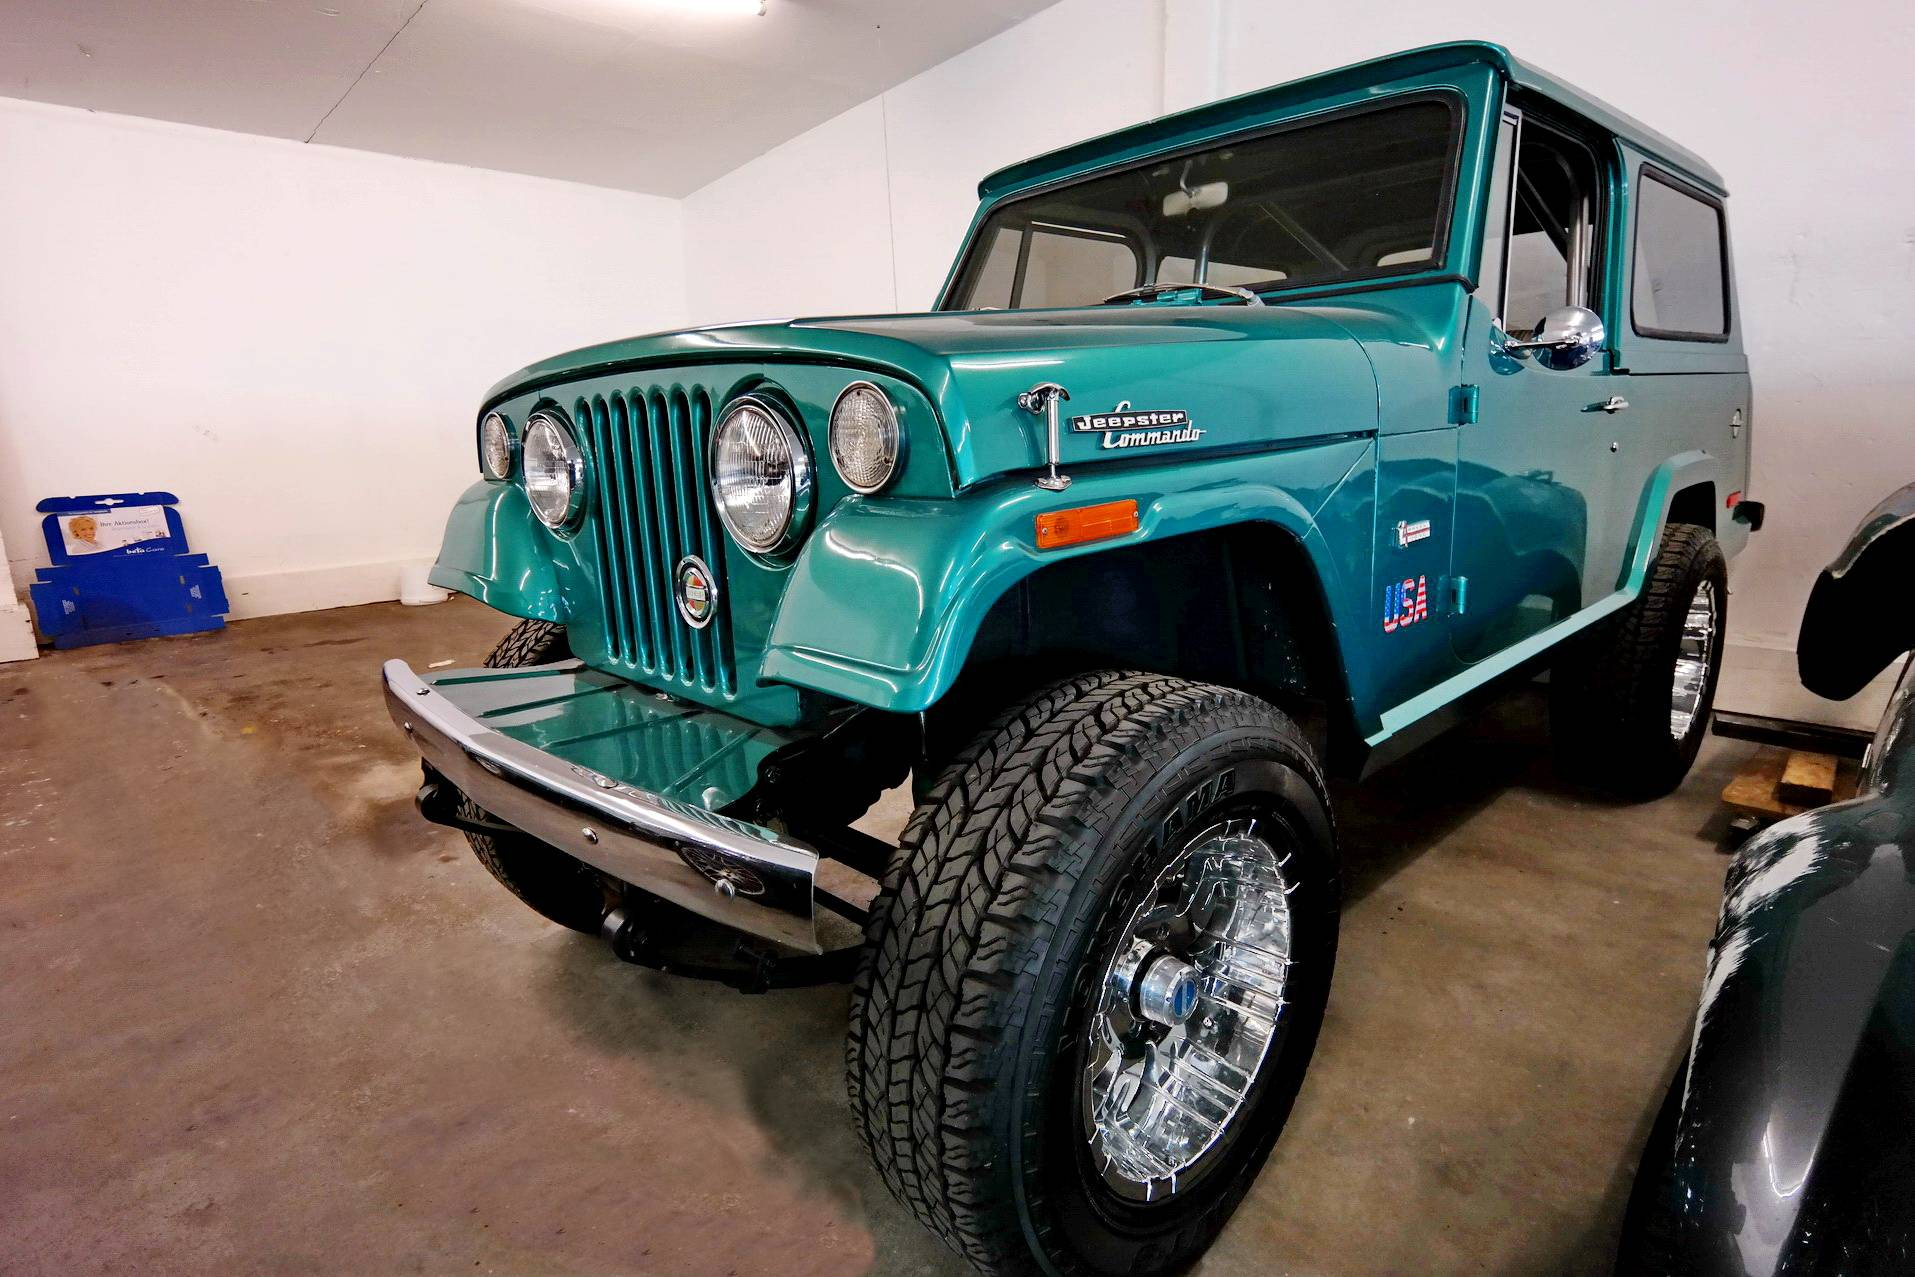 Jeep Jeepster Commando C-101